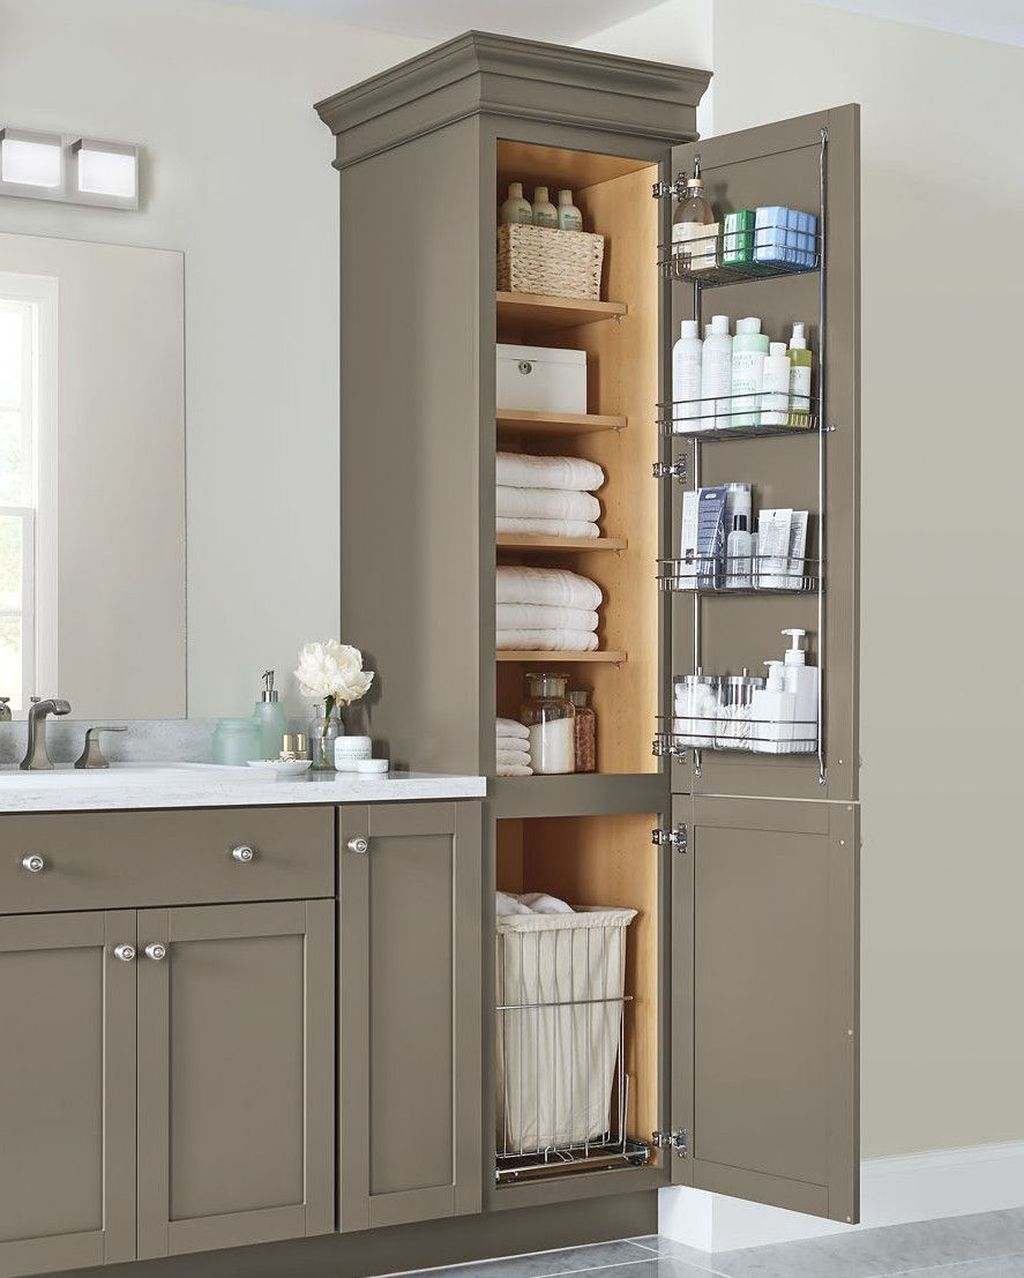 Delightful Bathroom Storage Design Ideas32